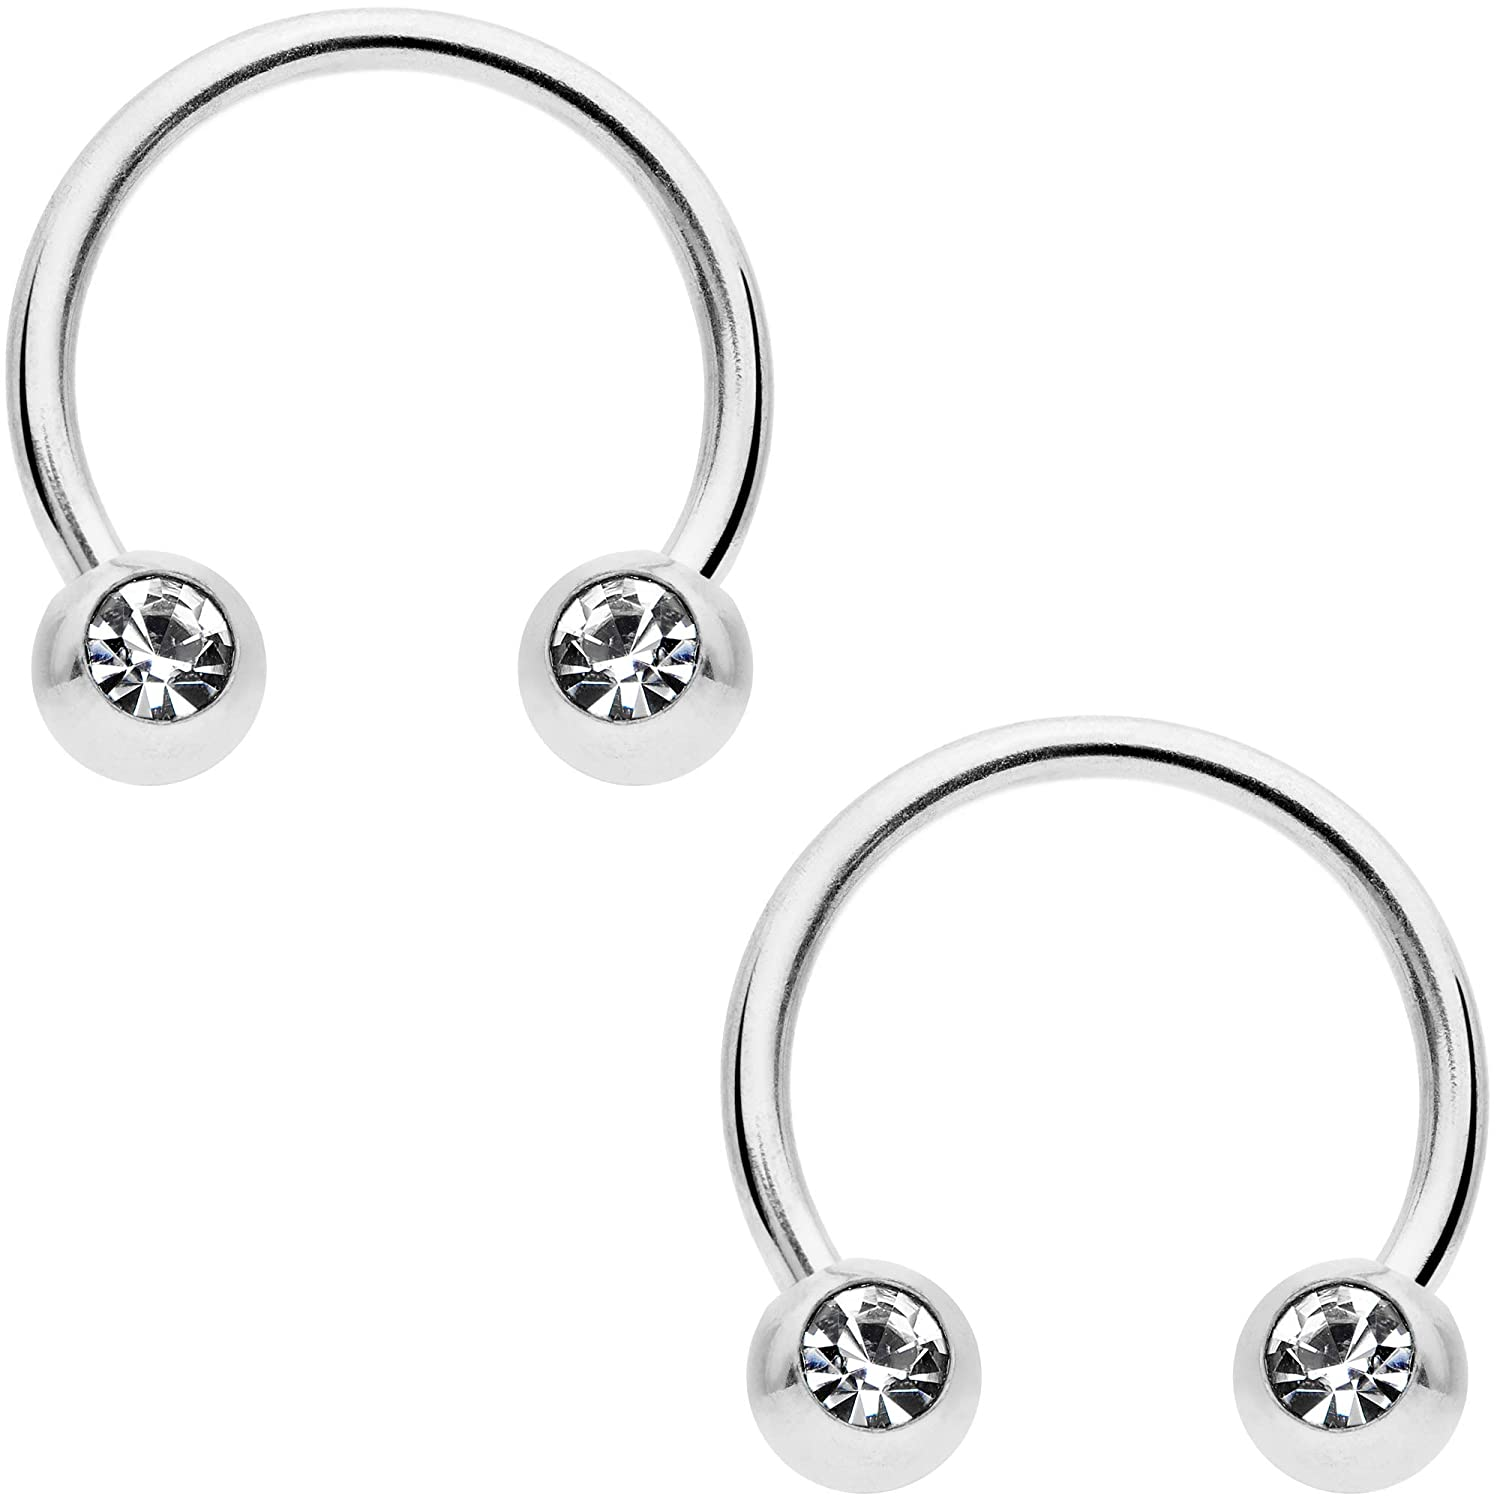 Body Candy 14G Nipplerings Piercing PVD Steel Variety 6Pc Clear Accent BCR Captive Nipple Ring Set 3//8